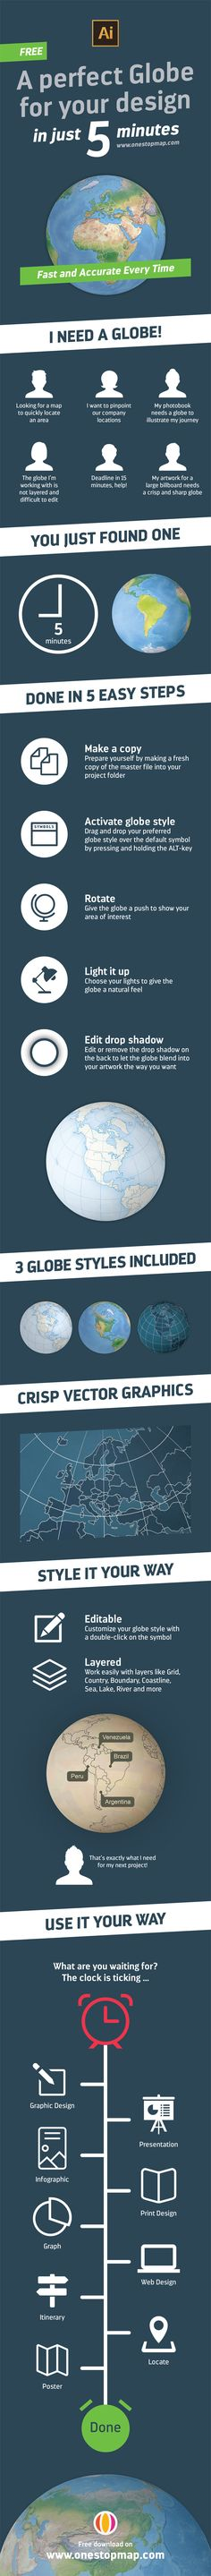 Infographic - A perfect globe for your design in just 5 minutes